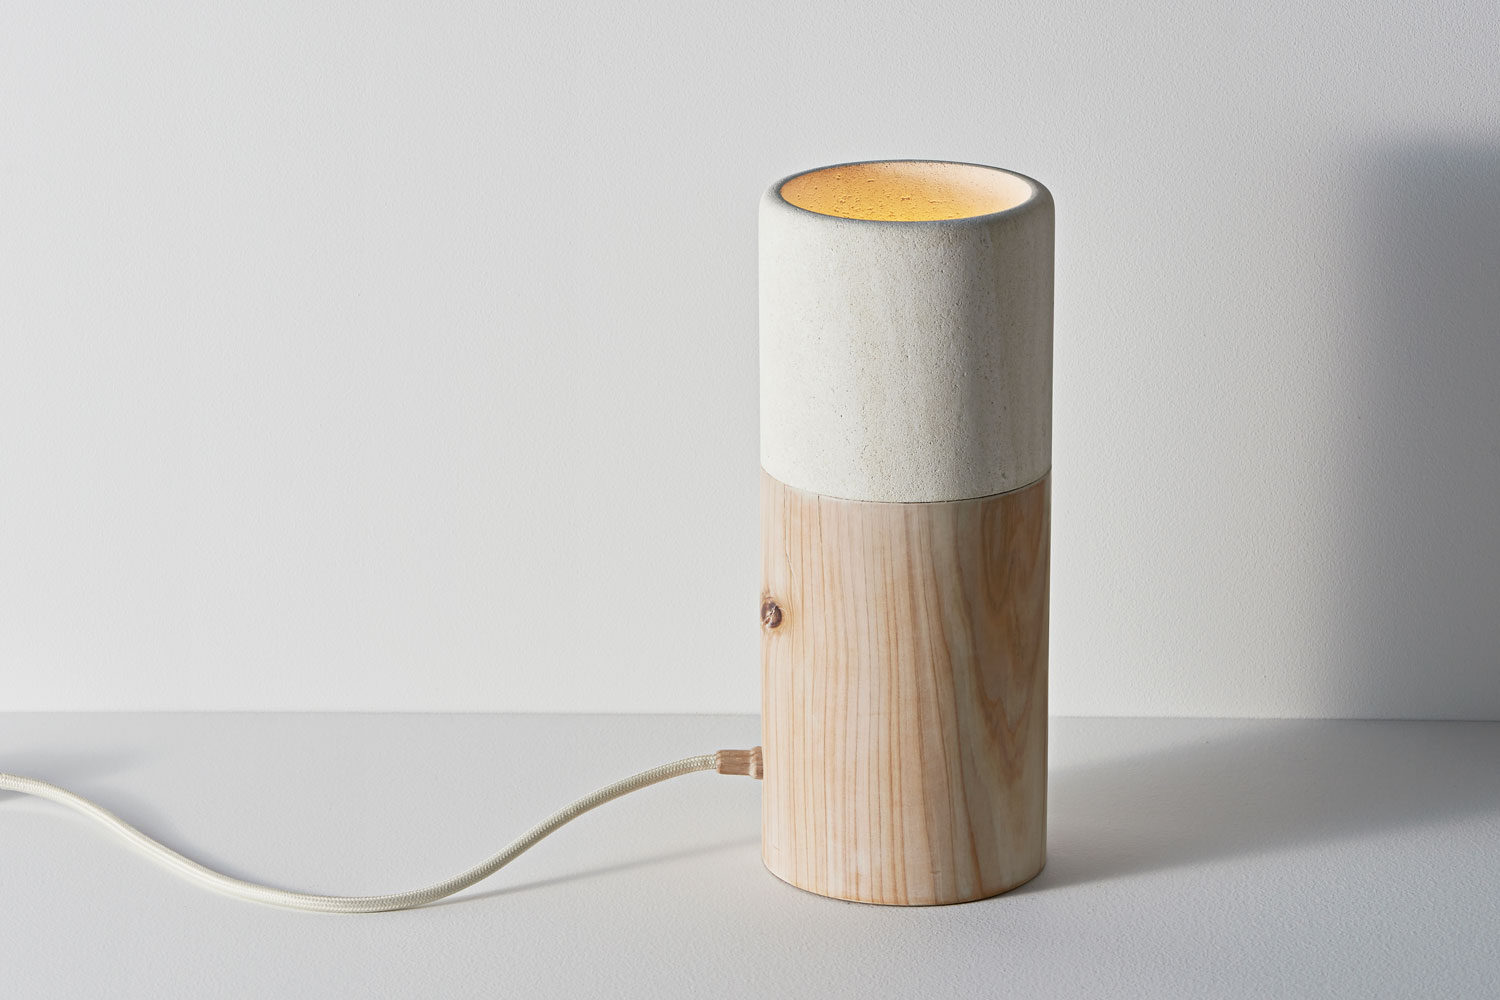 Object Future Australian Design Exhibition // Matchstick Lamp by Hugh Altschwager | Yellowtrace